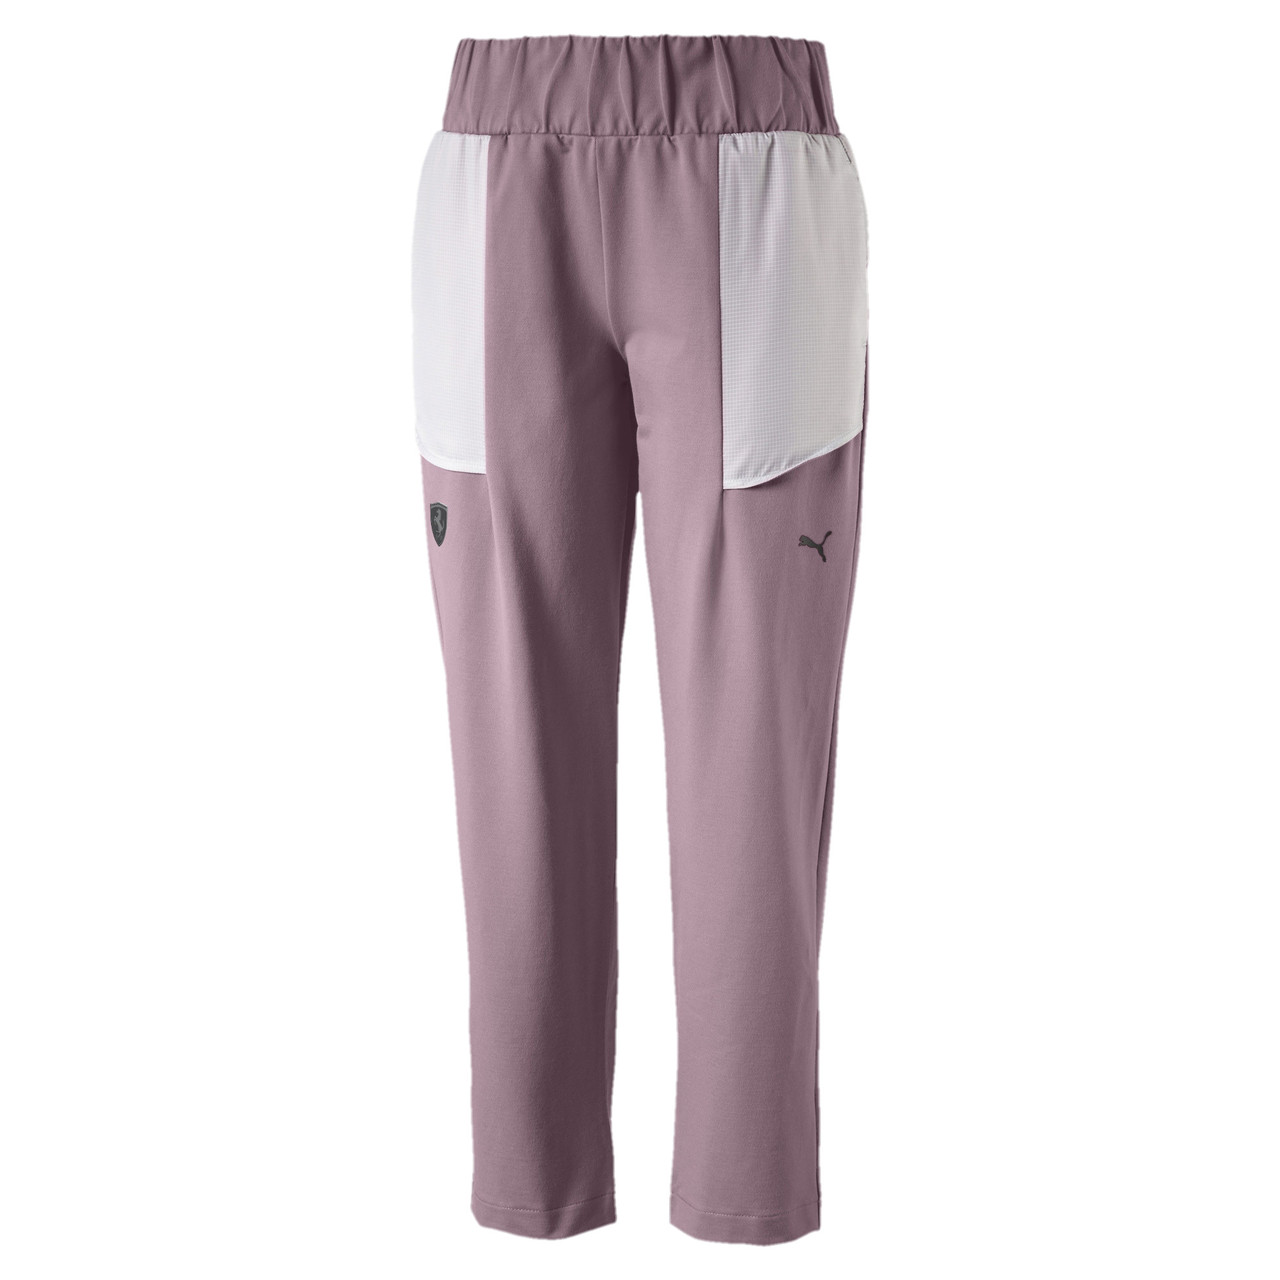 Спортивные штаны Ferrari Women's Sweatpants